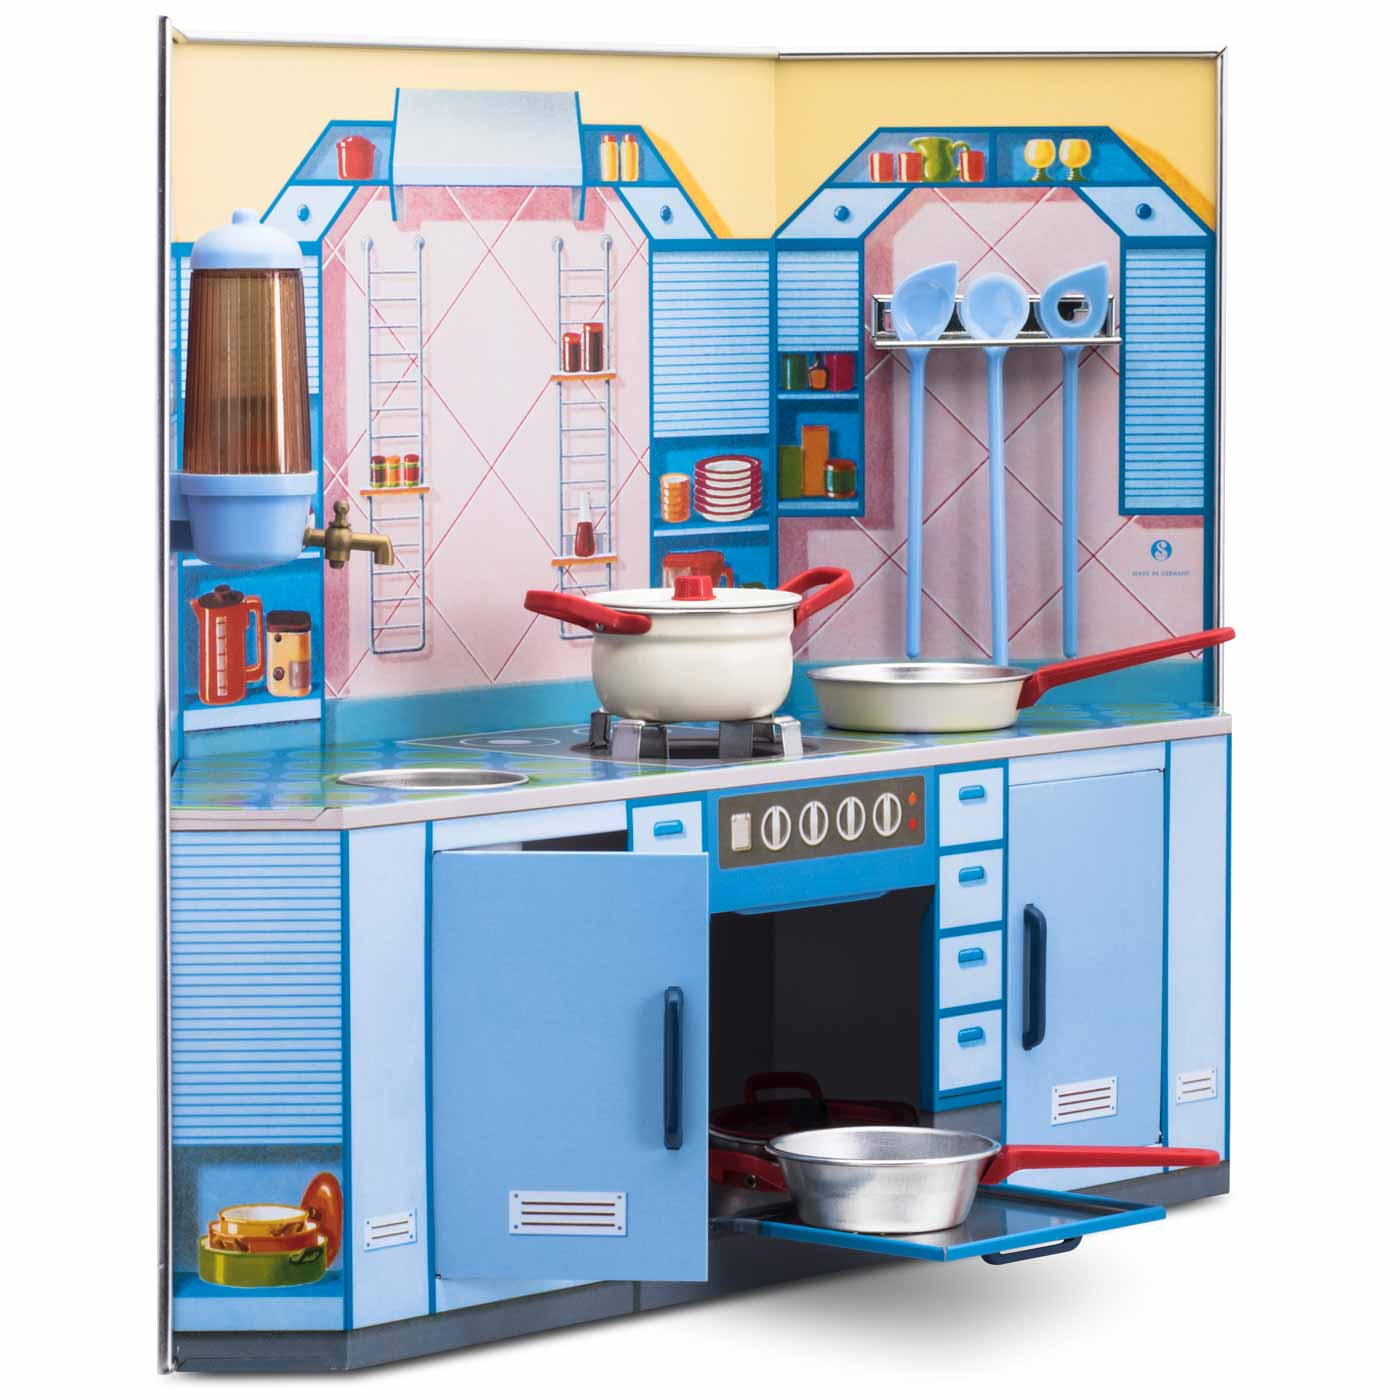 Doll\'s kitchen | Schopper